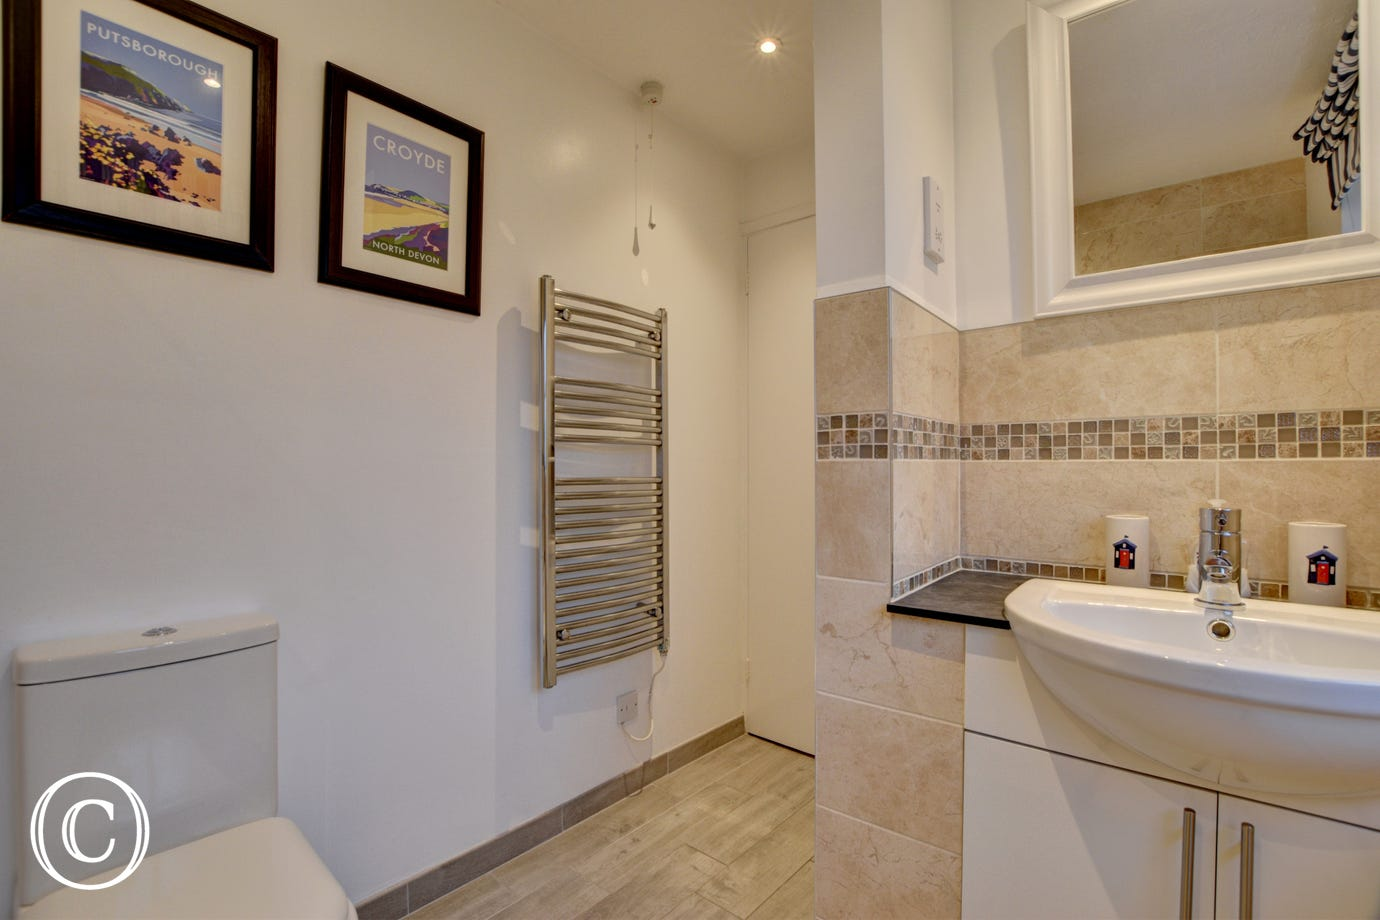 A separate modern bathroom with white suite completes the accommodation